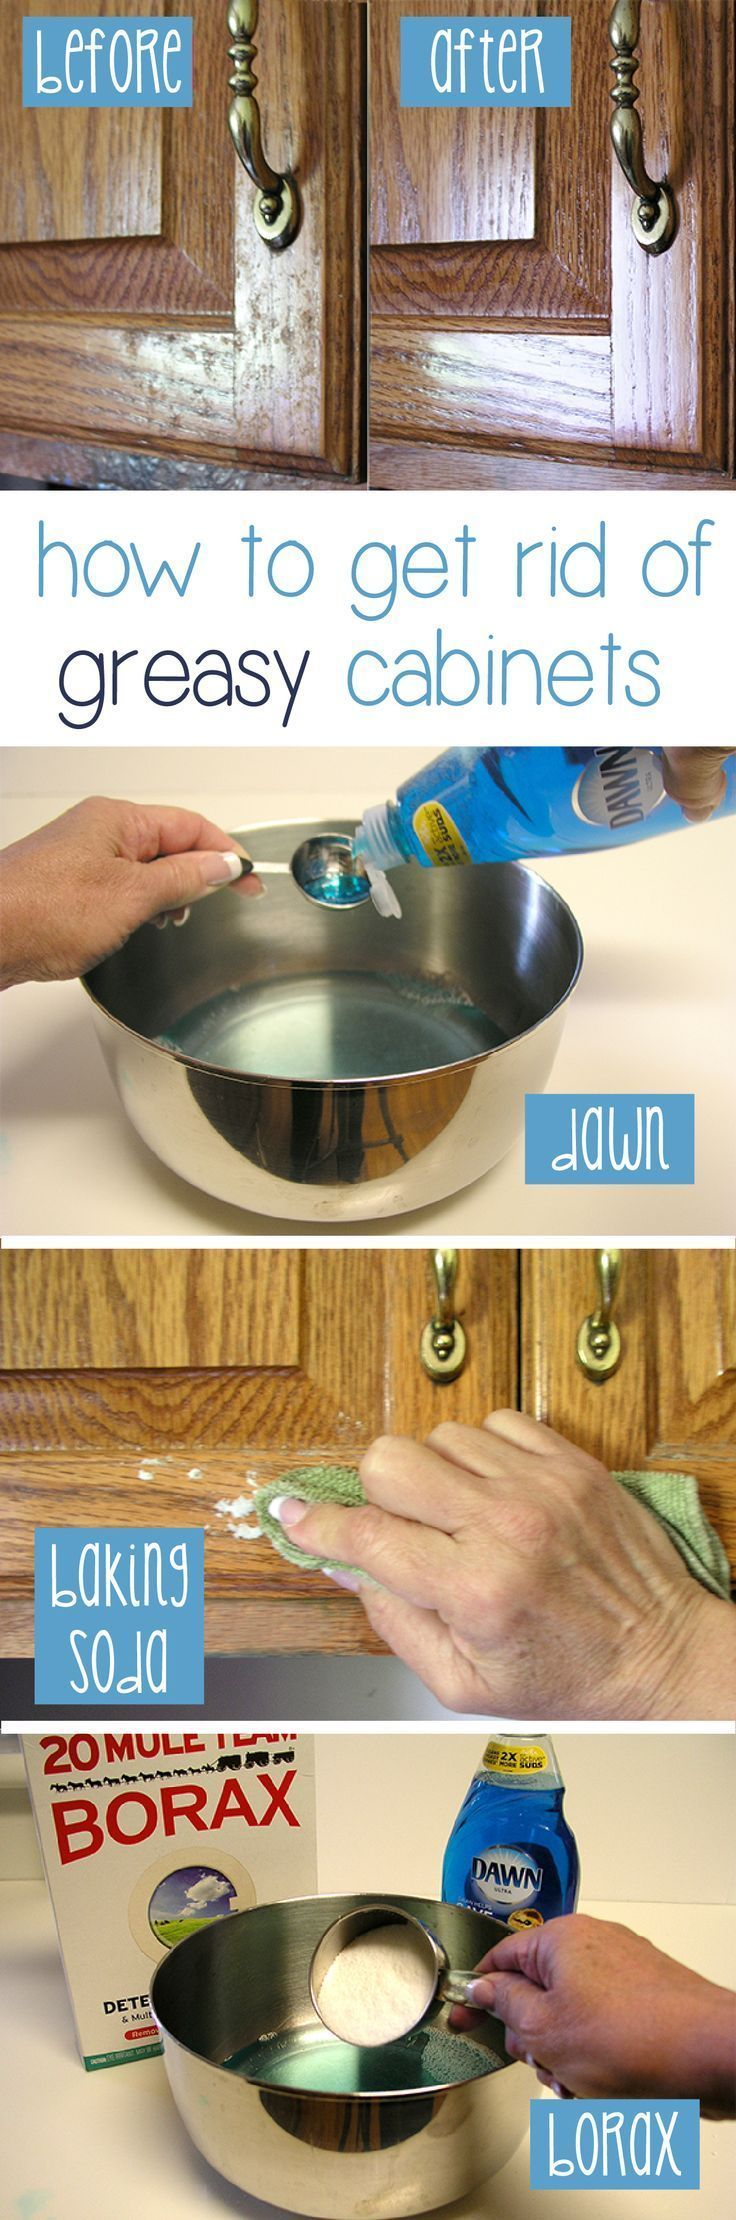 Cleaning the kitchen cabinets - To Clean Your House Like A Boss With 11 Of The Best Cleaning Tips